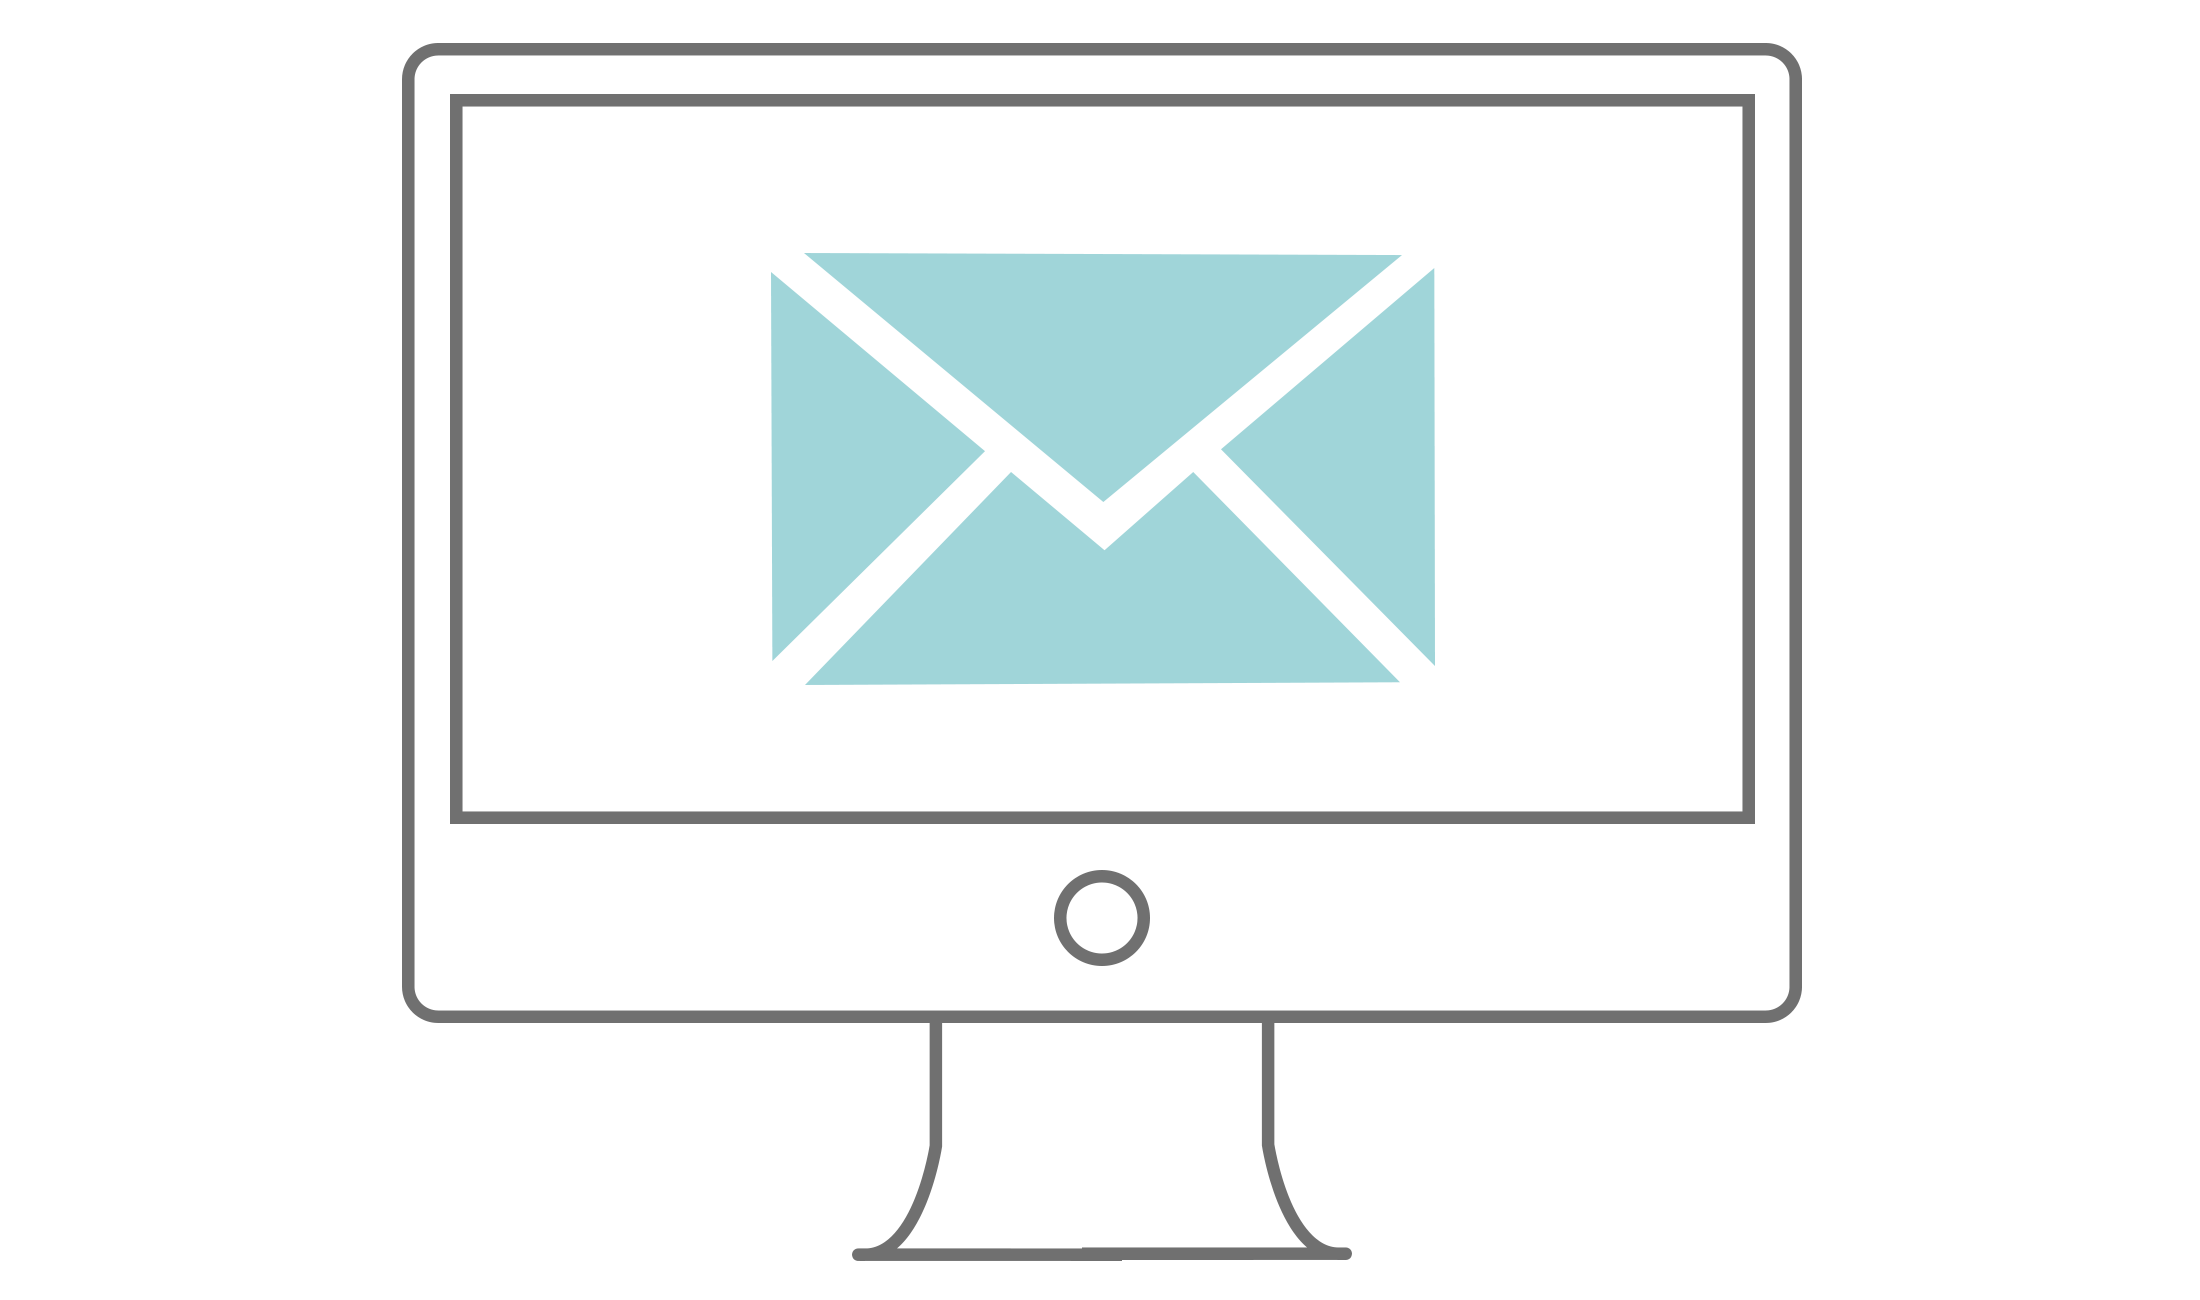 3.Receive your report. - You report will arrive in your e-mail inbox within 48 hours along with our proprietary action plans to help you reach your full potential.